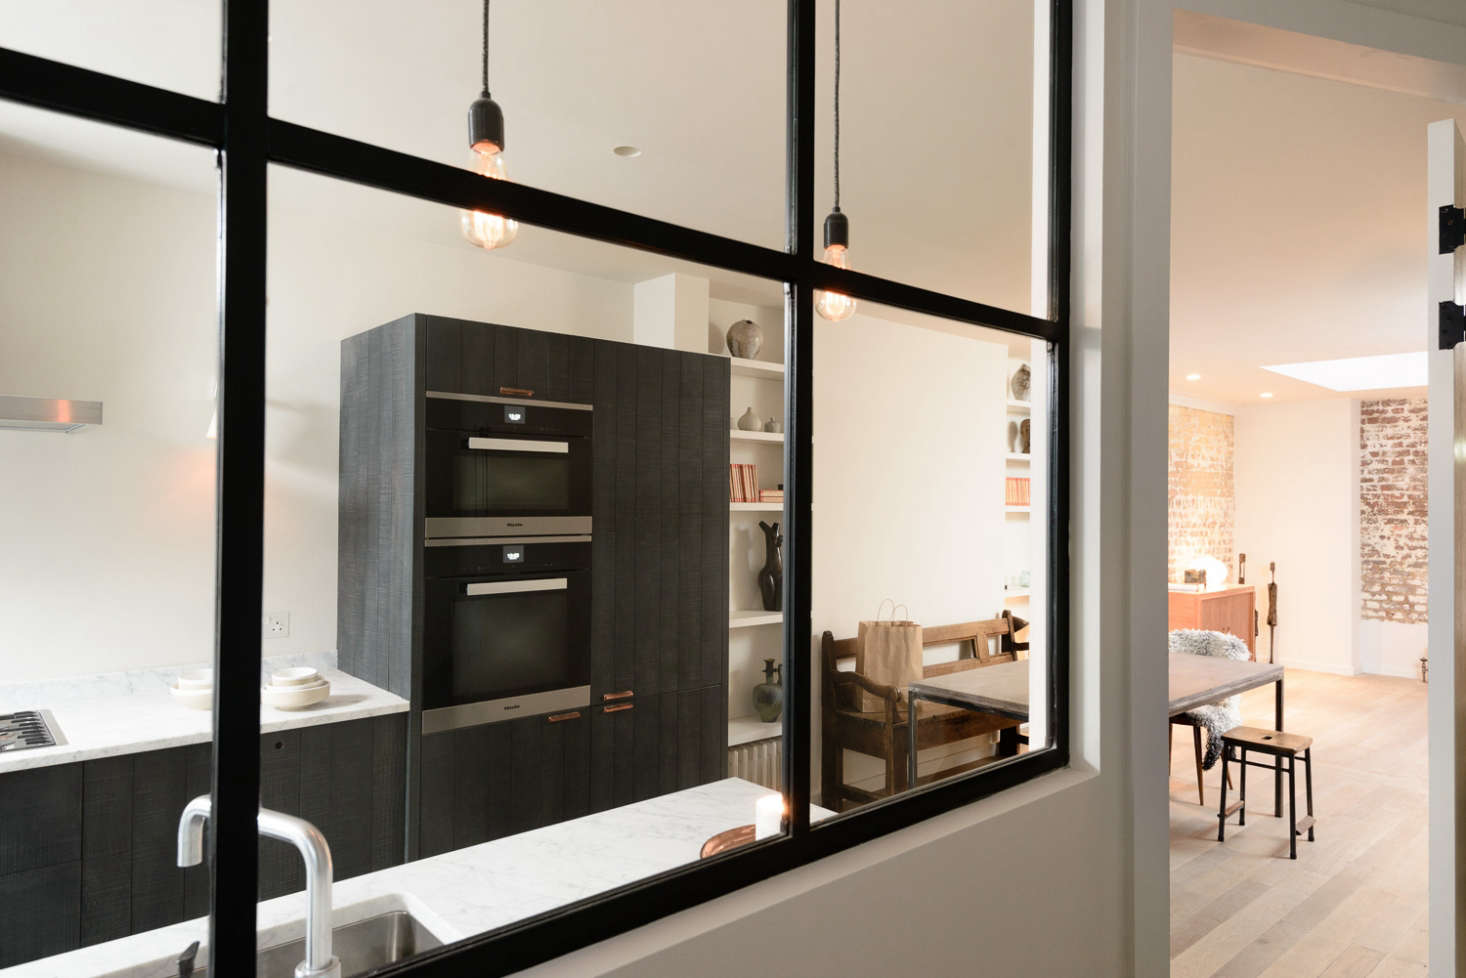 Black wood paneled cabinets and marble counters in the Marylebone kitchen by Simon Cox for DeVol   Remodelista